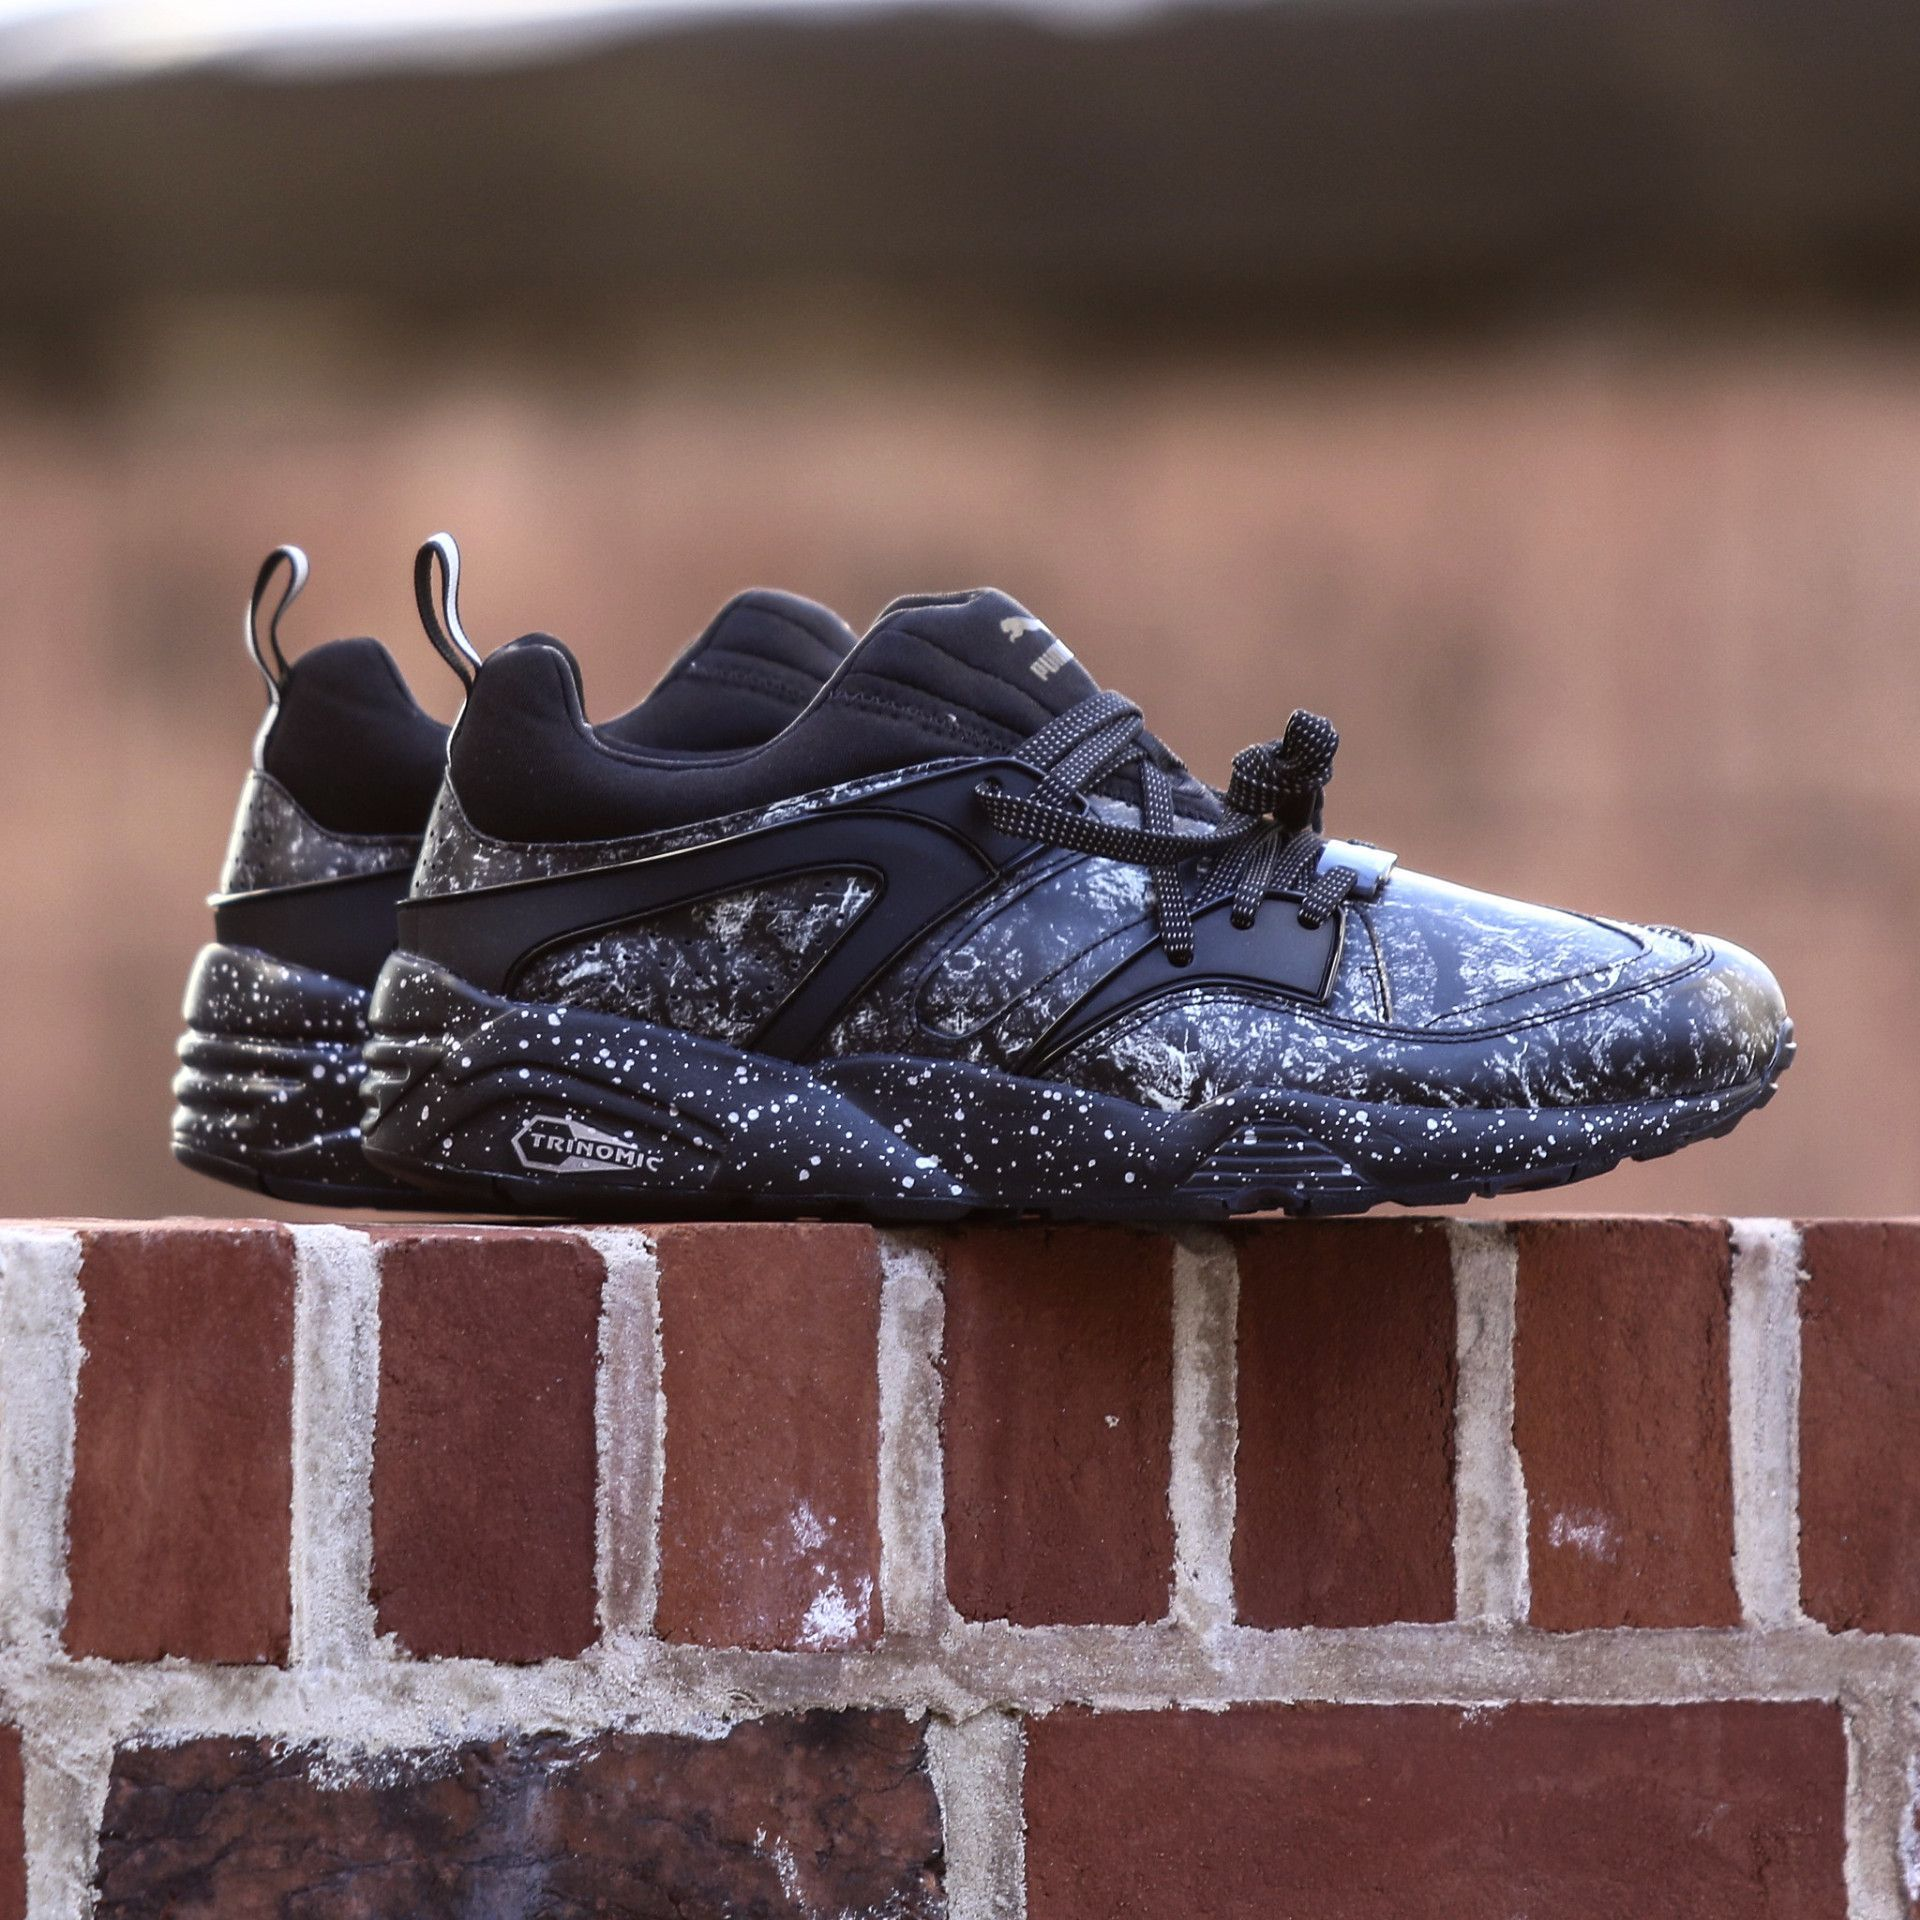 308d06fb829e Designer  Puma Color  Black Limited Blaze of Glory ROXX from Puma Select.  Printed leather and textile upper with a rubber sole and perforated detail.